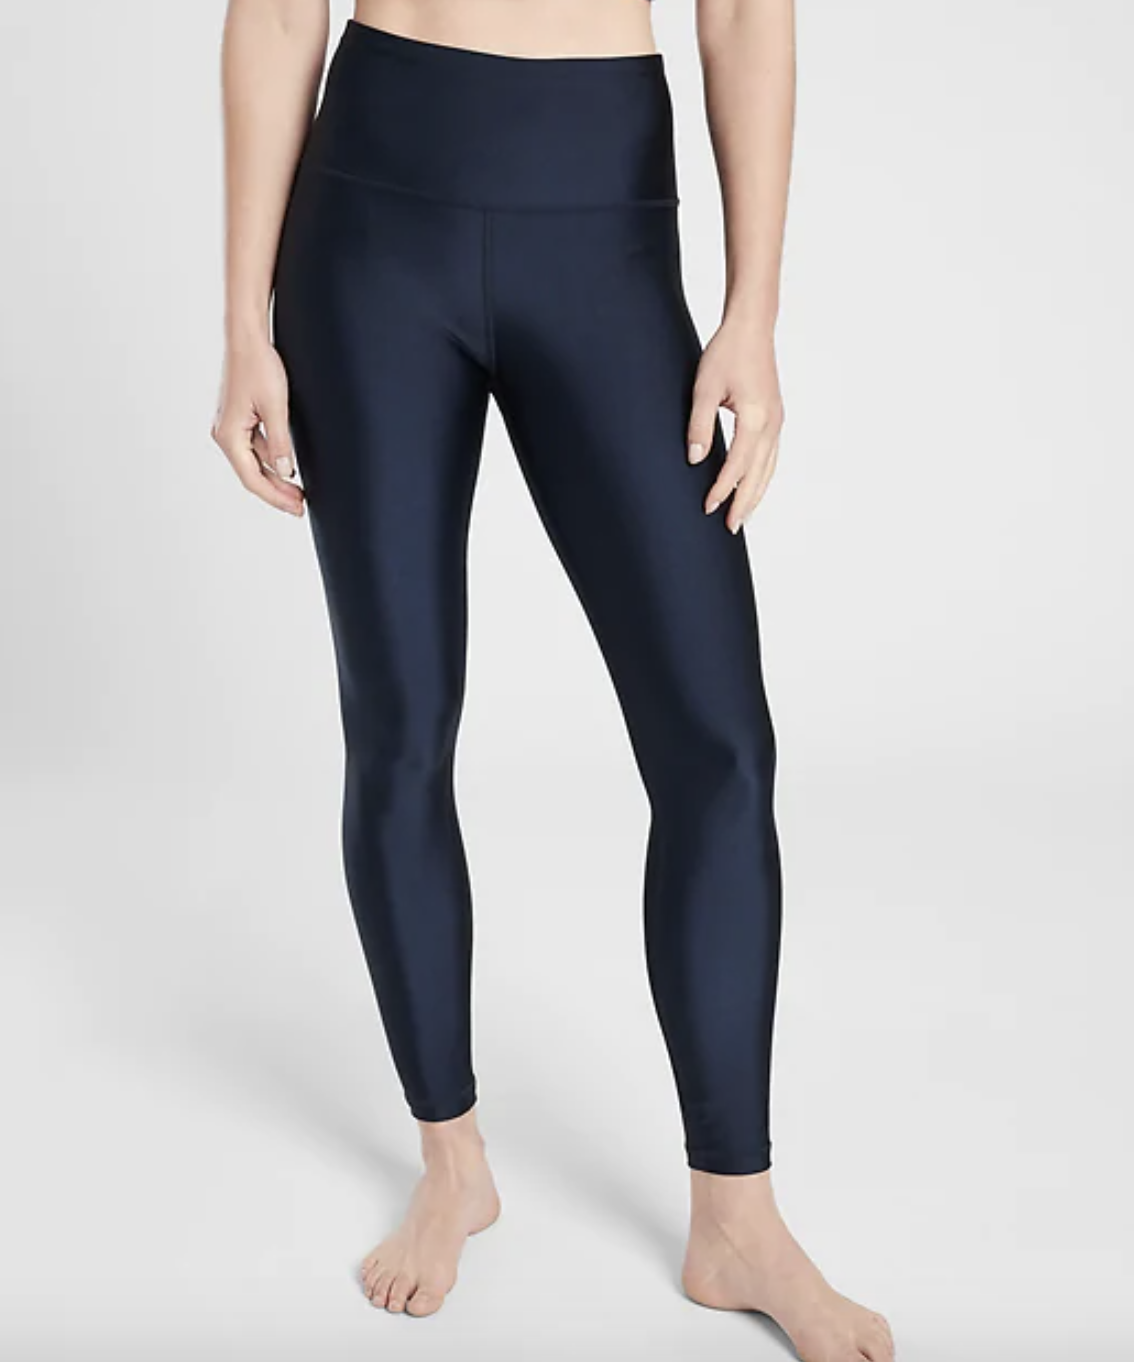 close up of a model wearing the elation shine tights in navy